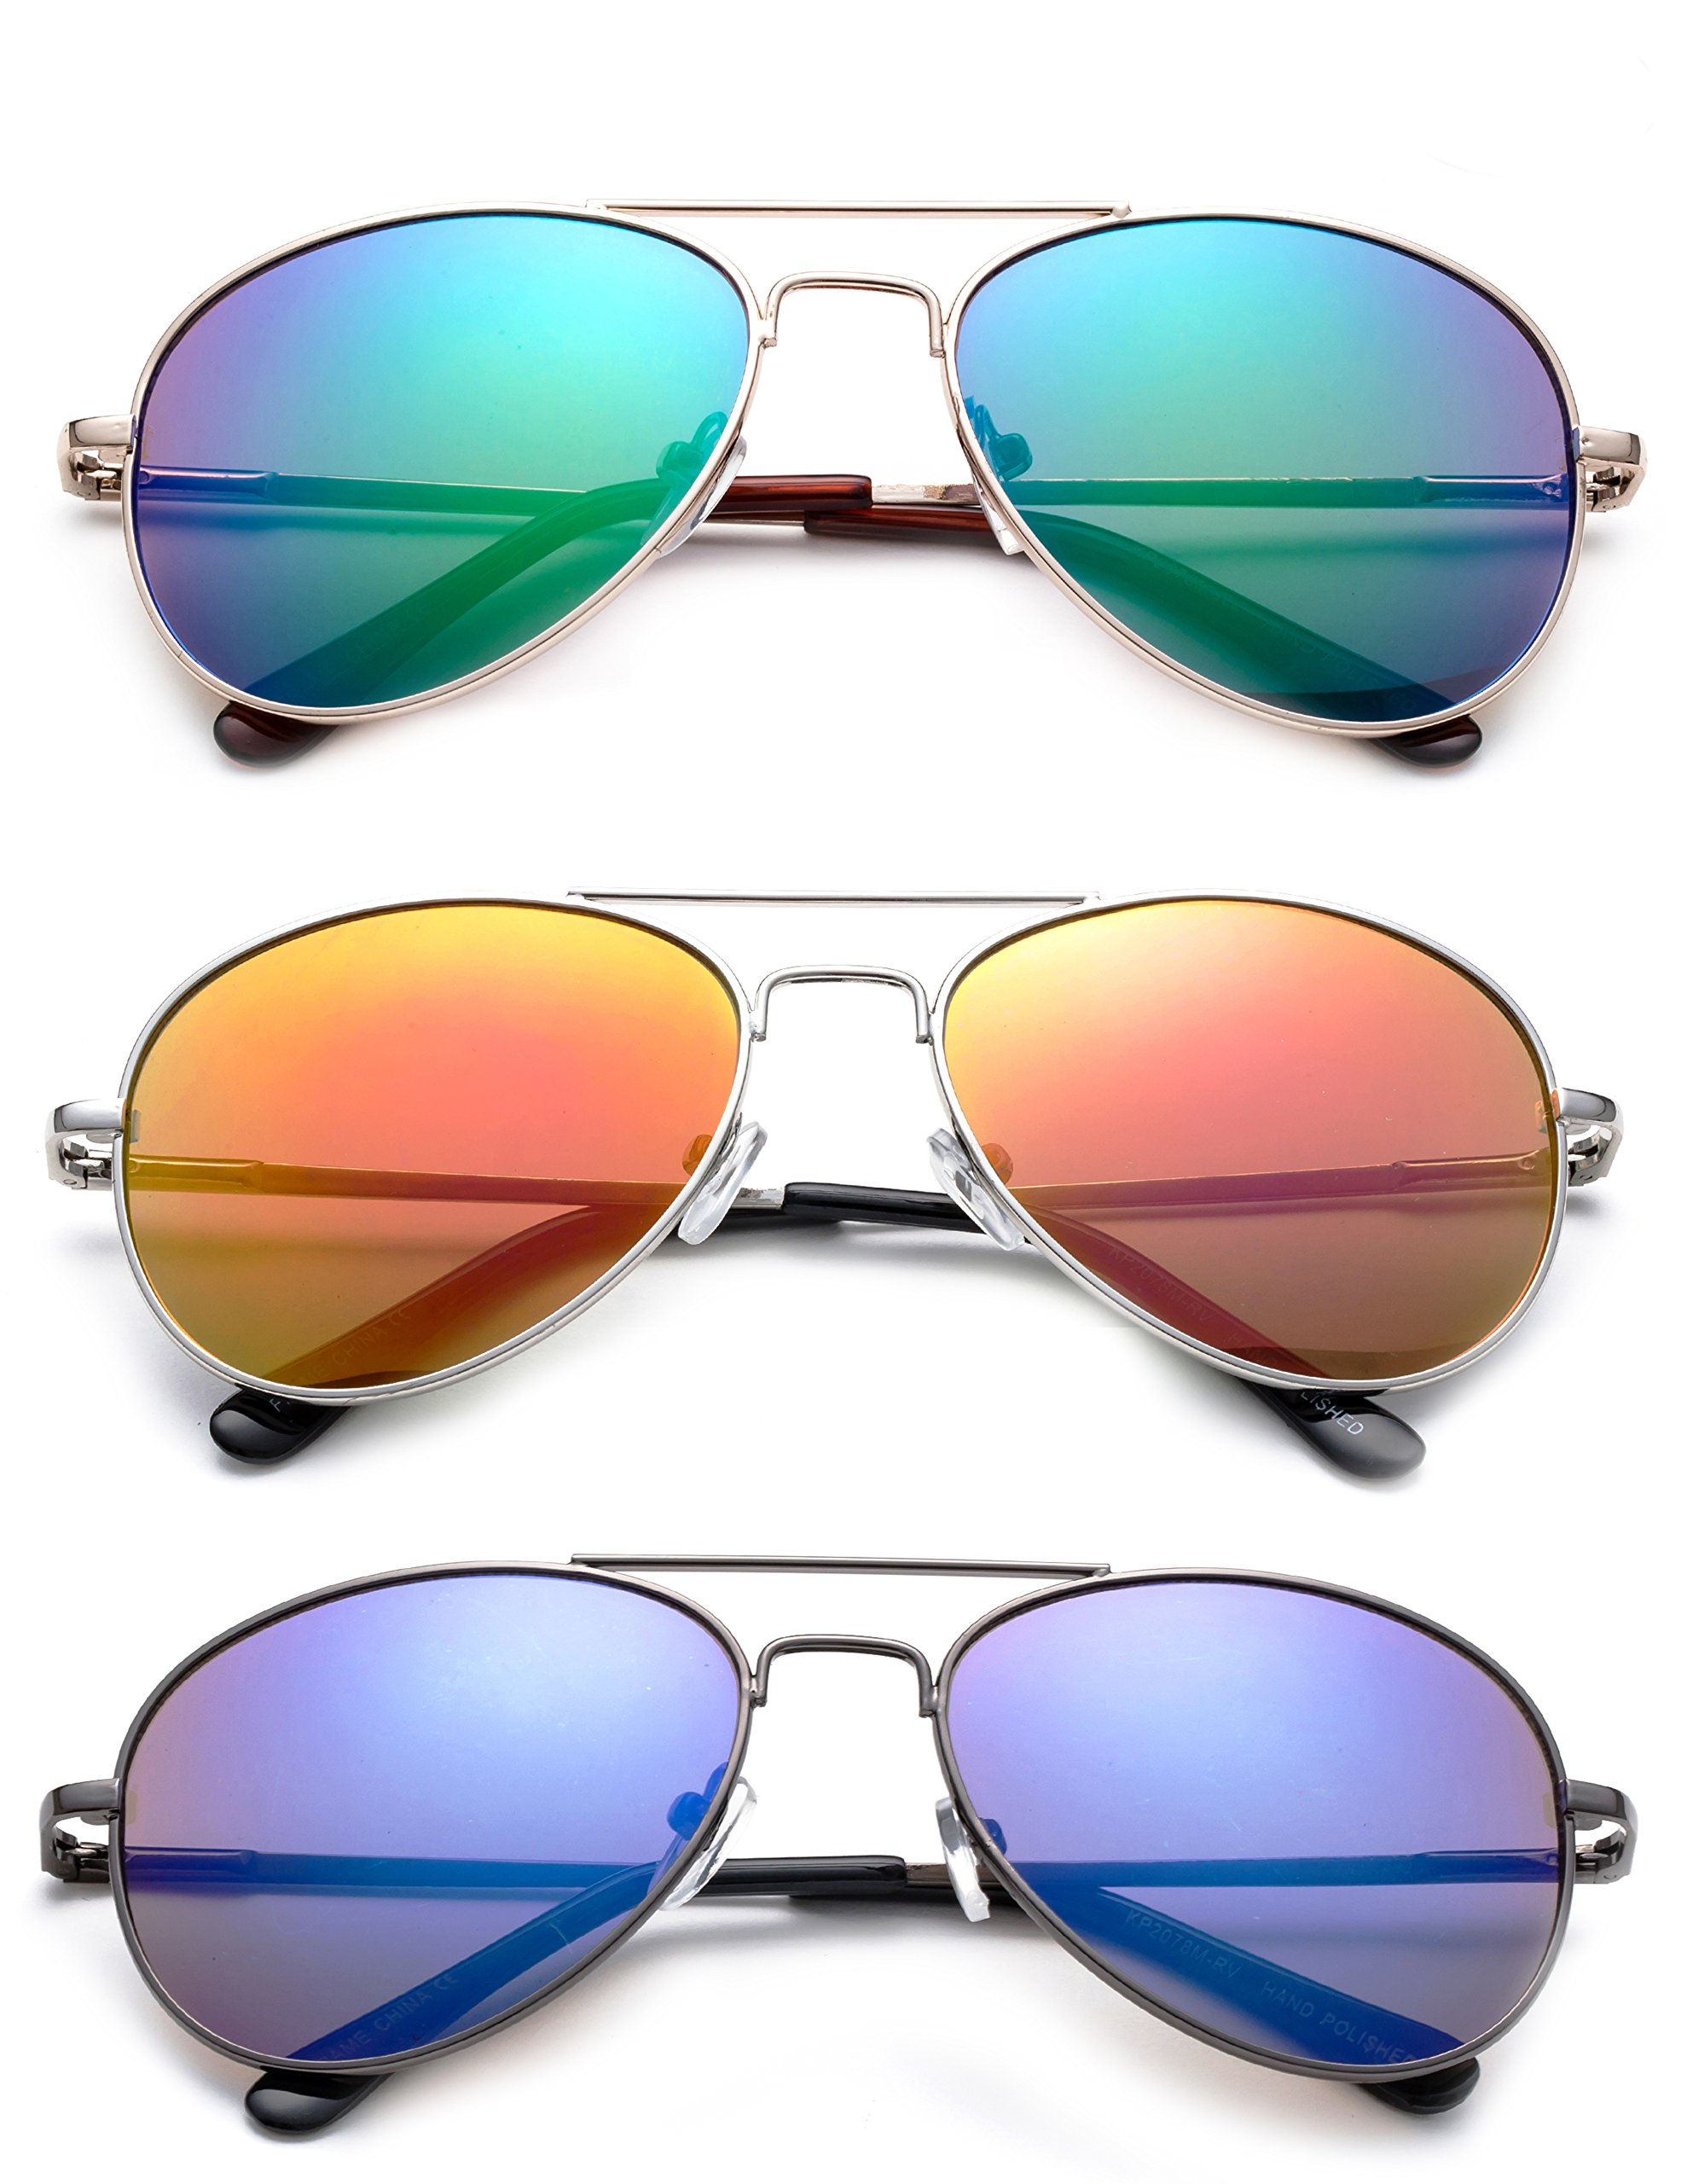 ''Sonido'' - Kyra Hand Polished Lead Free Fashion Sunglasses with Flash/Mirror Lenses for Kids Ages 1-5 years Old Fashion Accessories